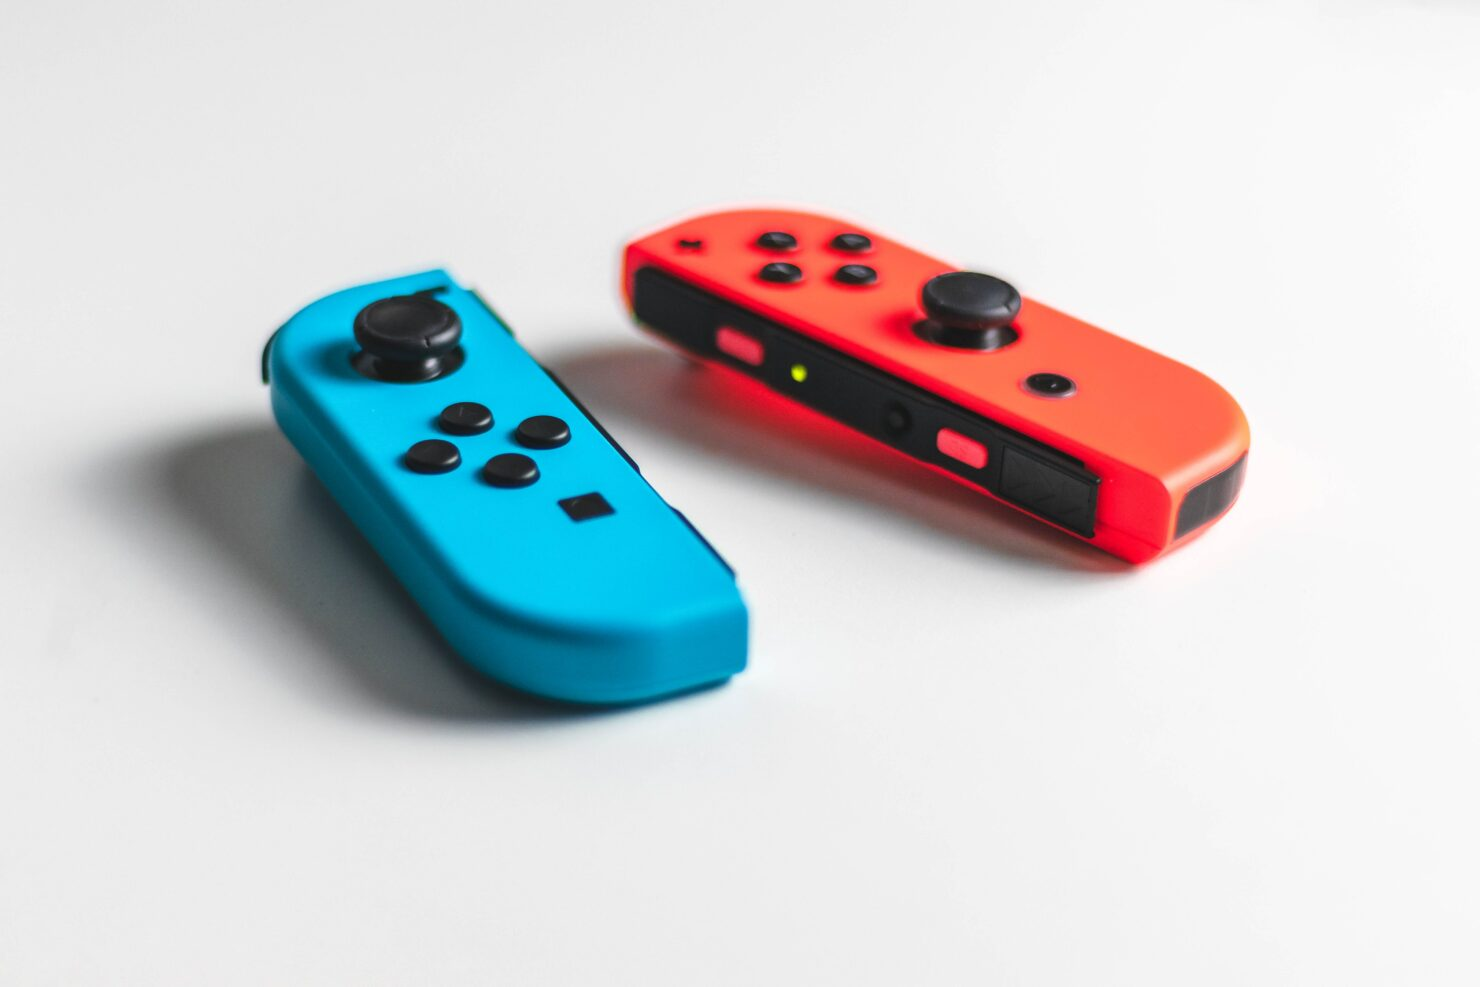 Galaxy Smartphones Can Use Nintendo Switch Joy-Cons for Controlling the Camera